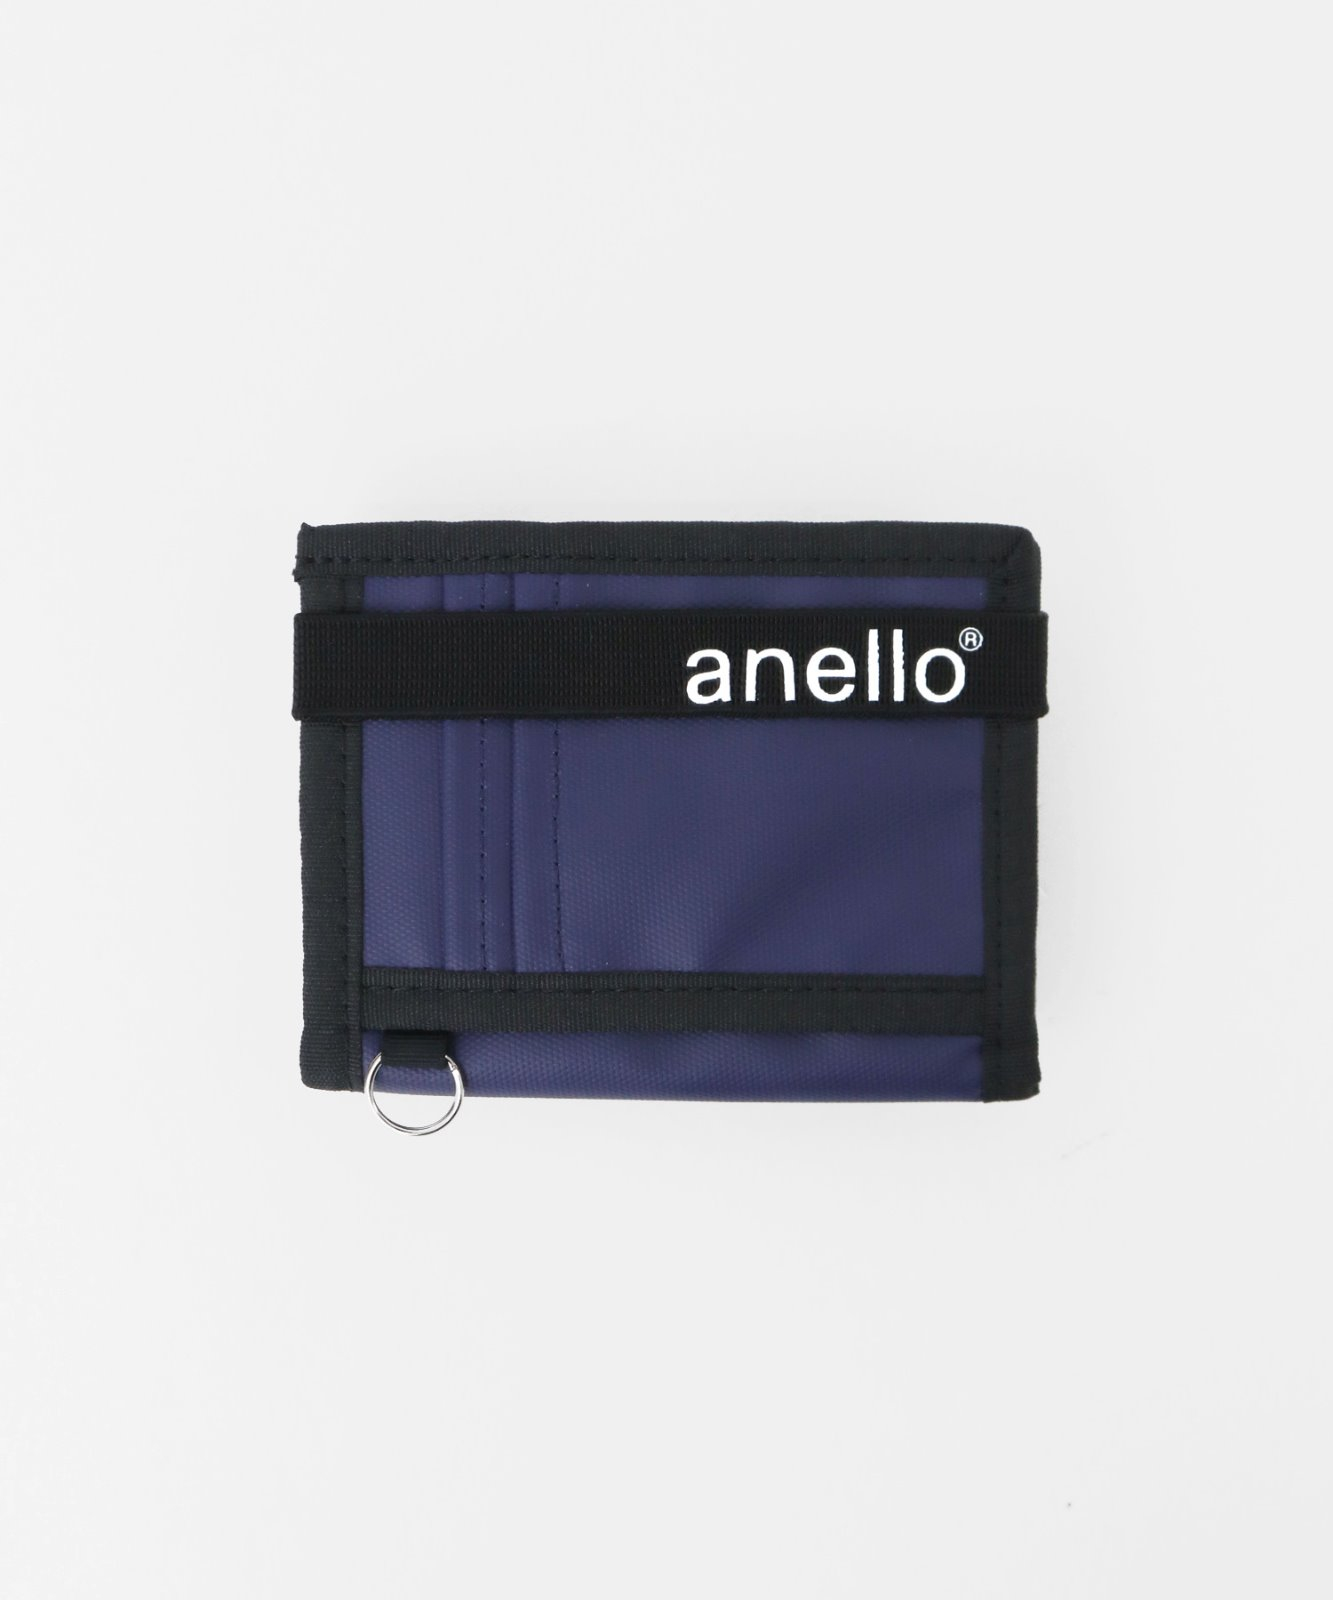 【anello® FLAGSHIP STORE OSAKA限定】撥水コンパクト財布